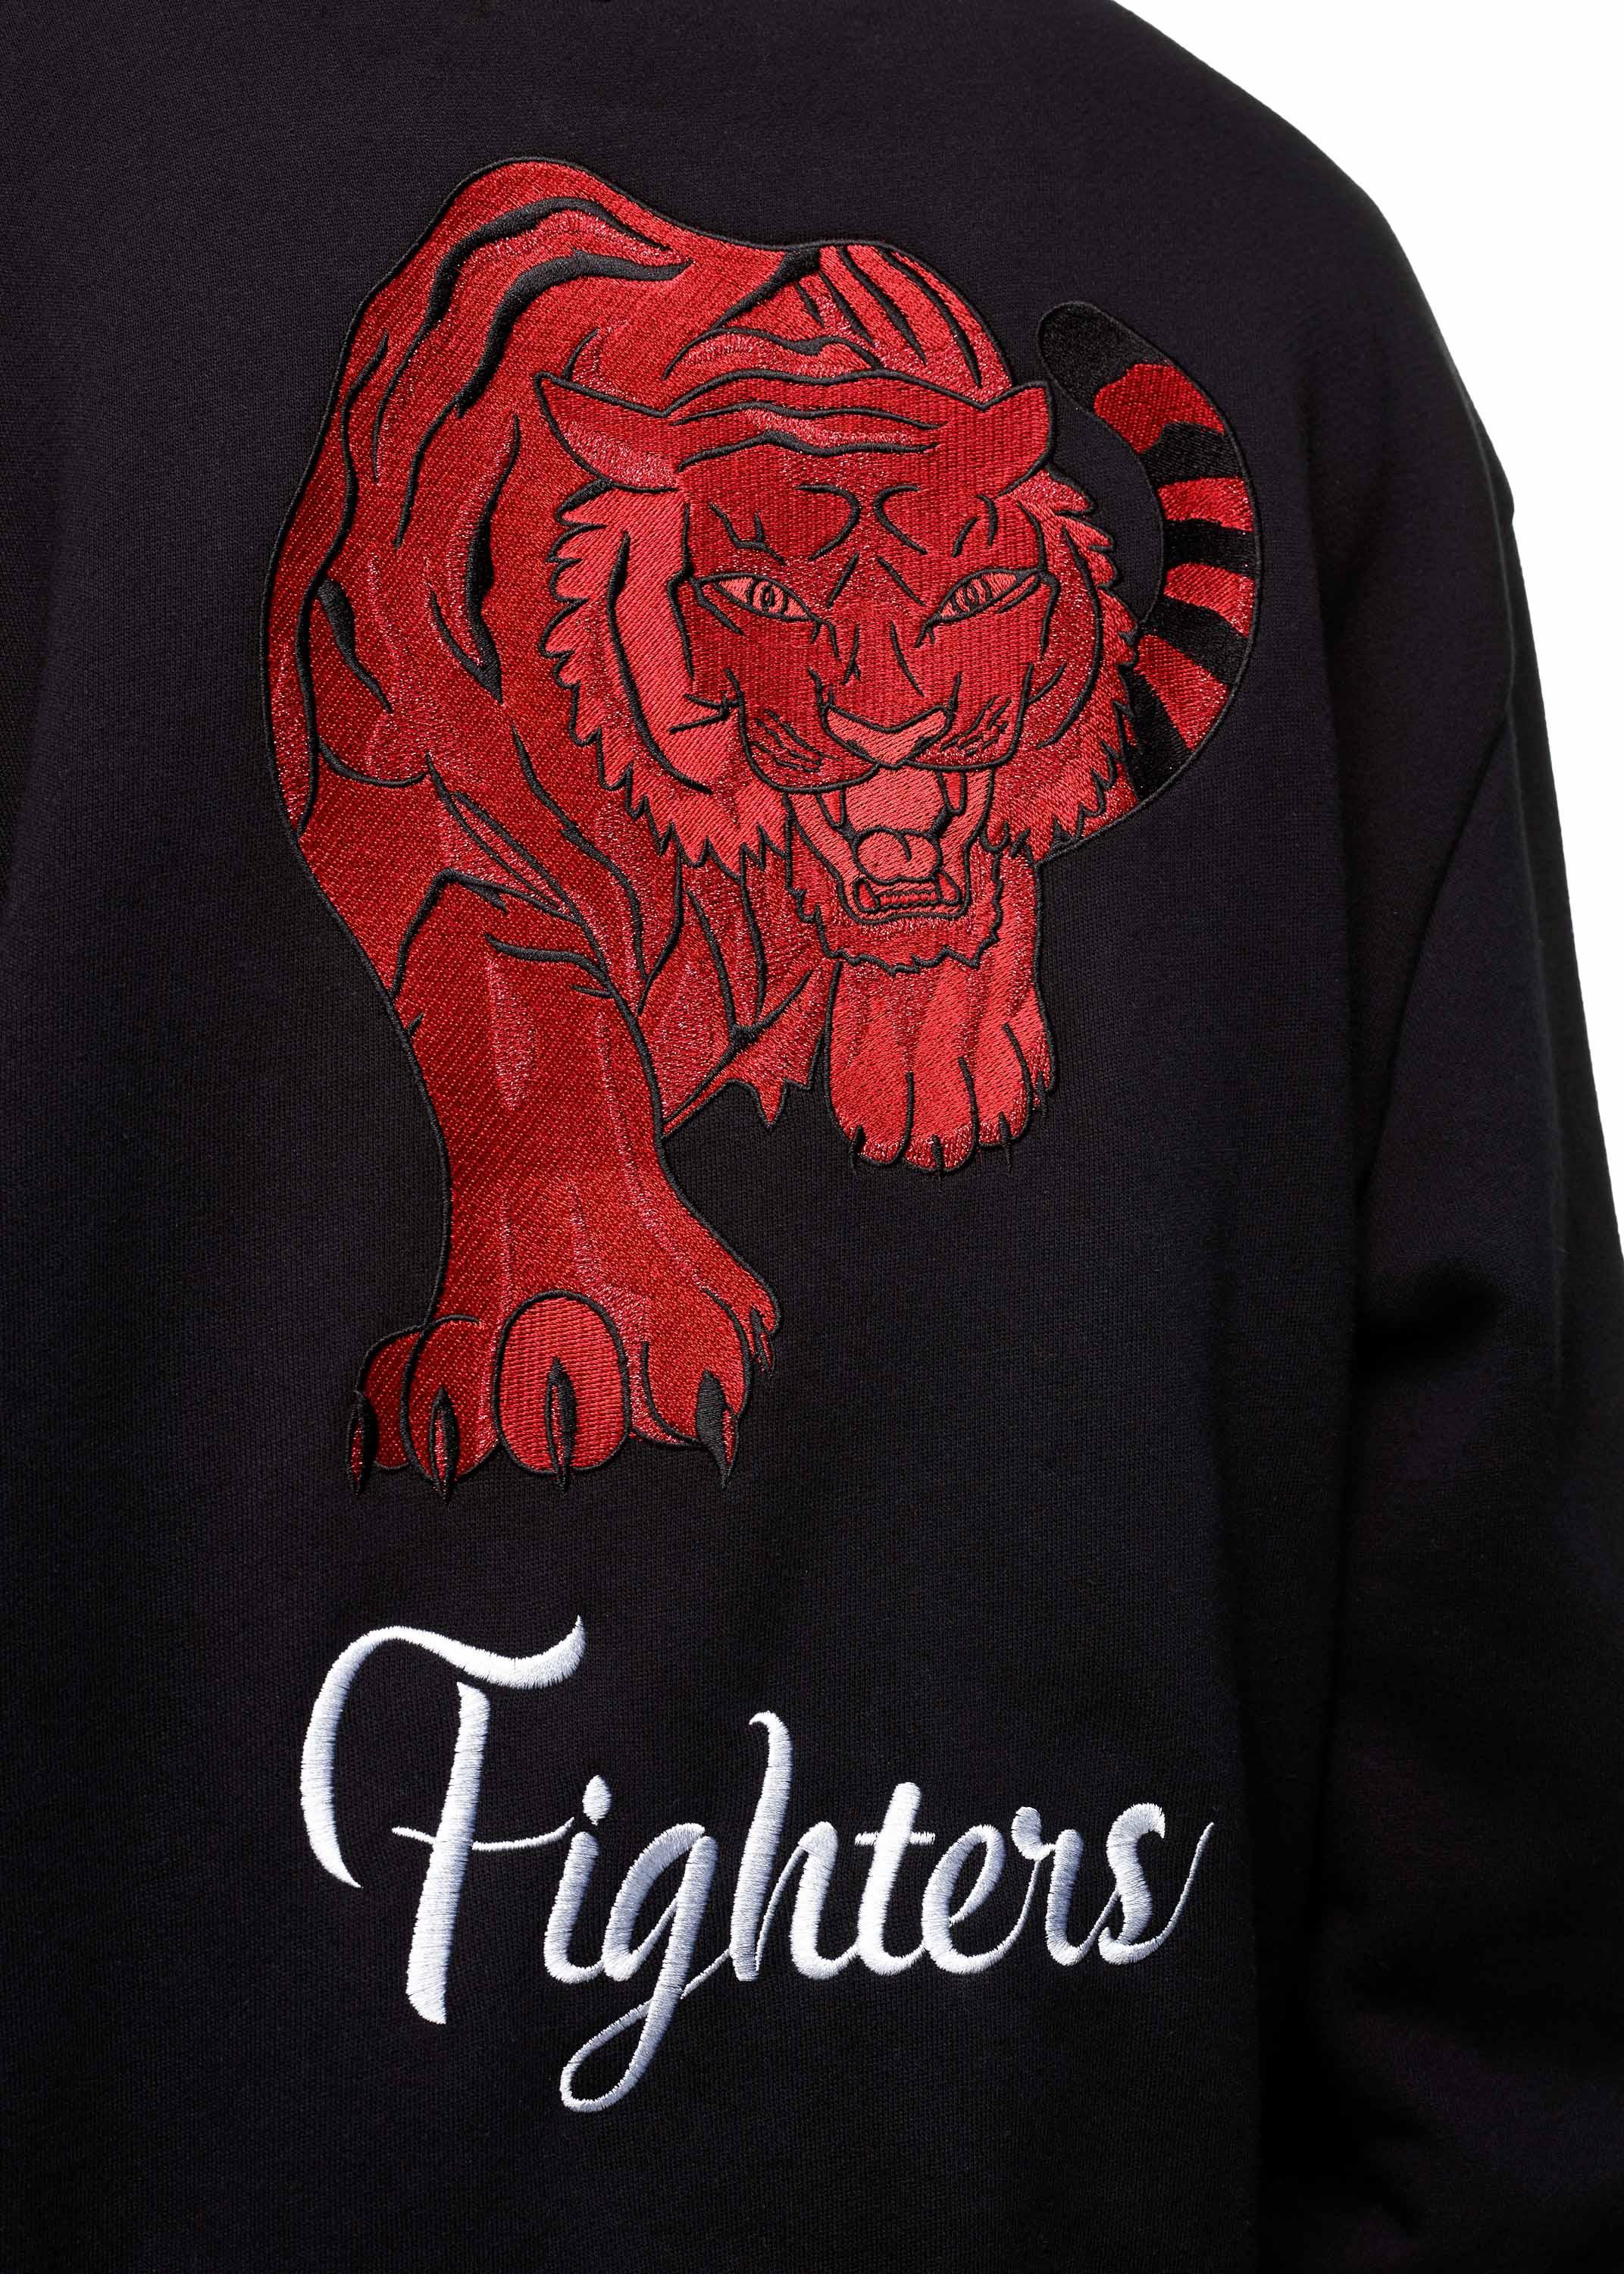 fighters-embroidered-crew-black-red-image-4